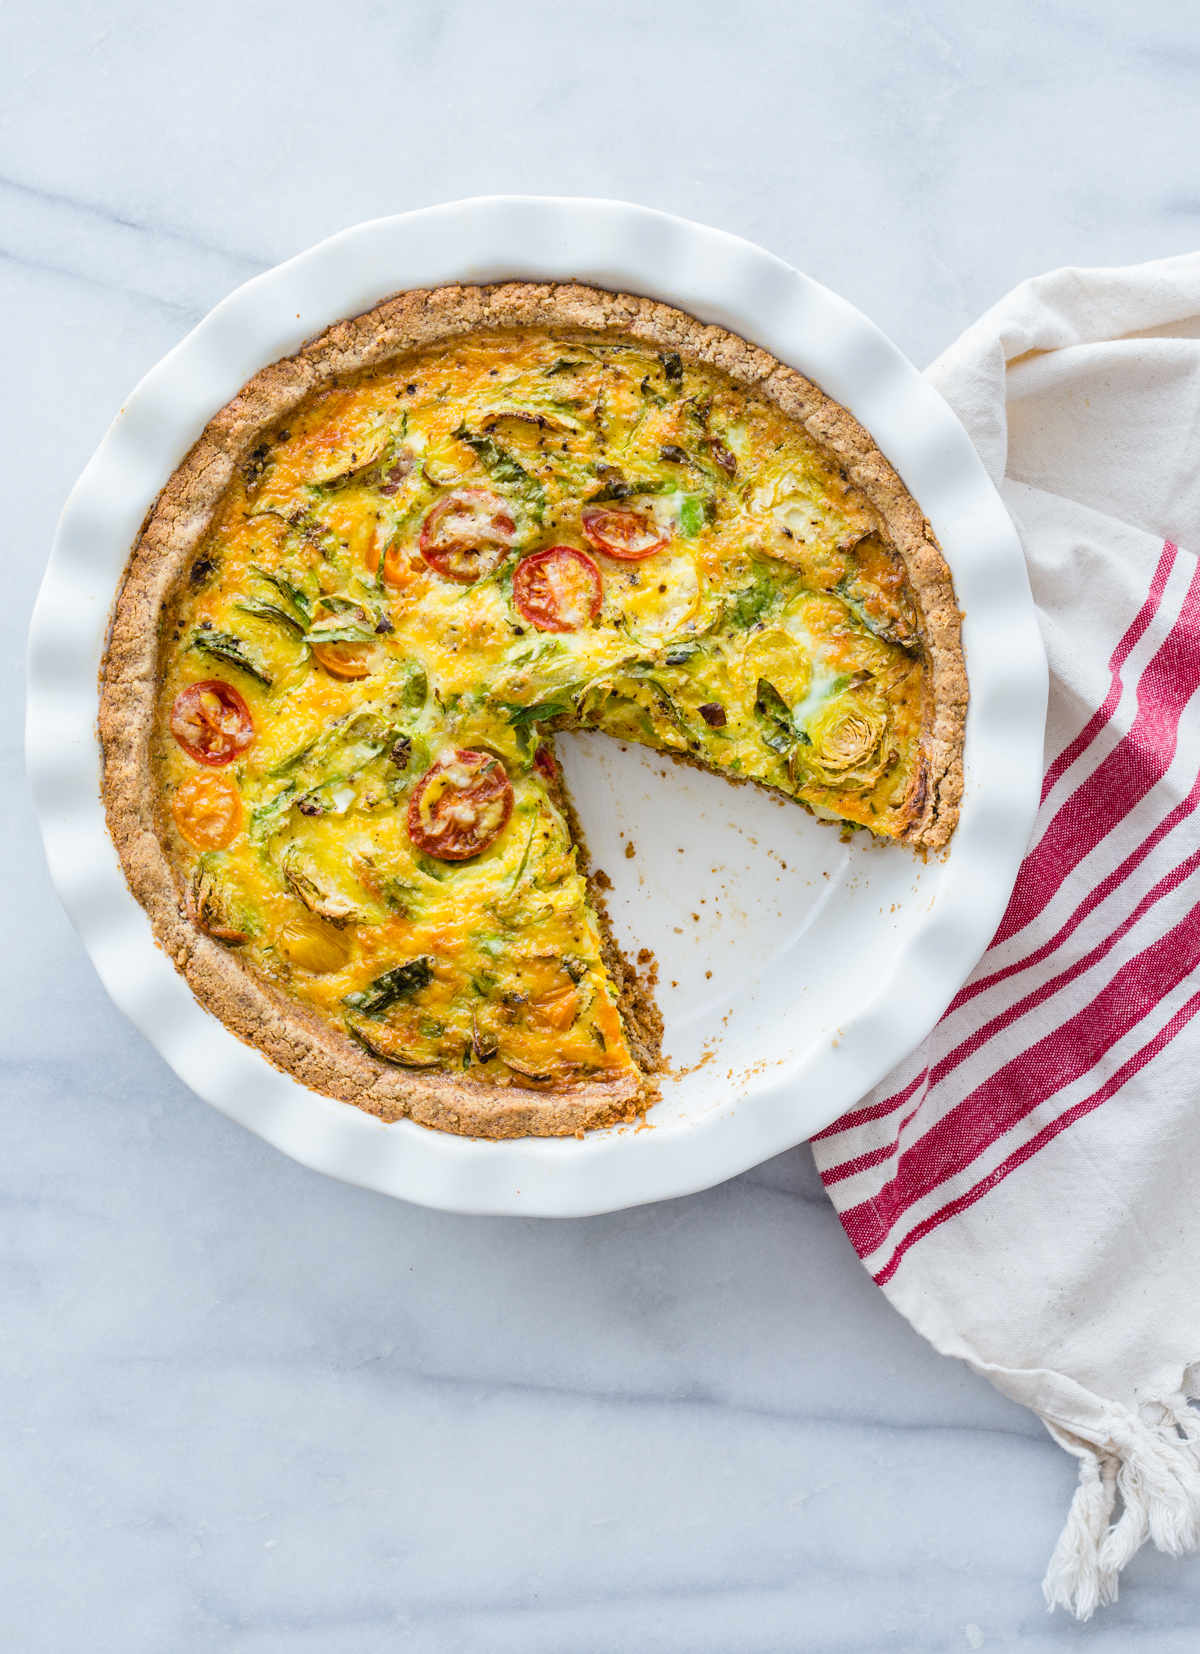 A Grain-Free, Keto Quiche Crust That Won't Disappoint